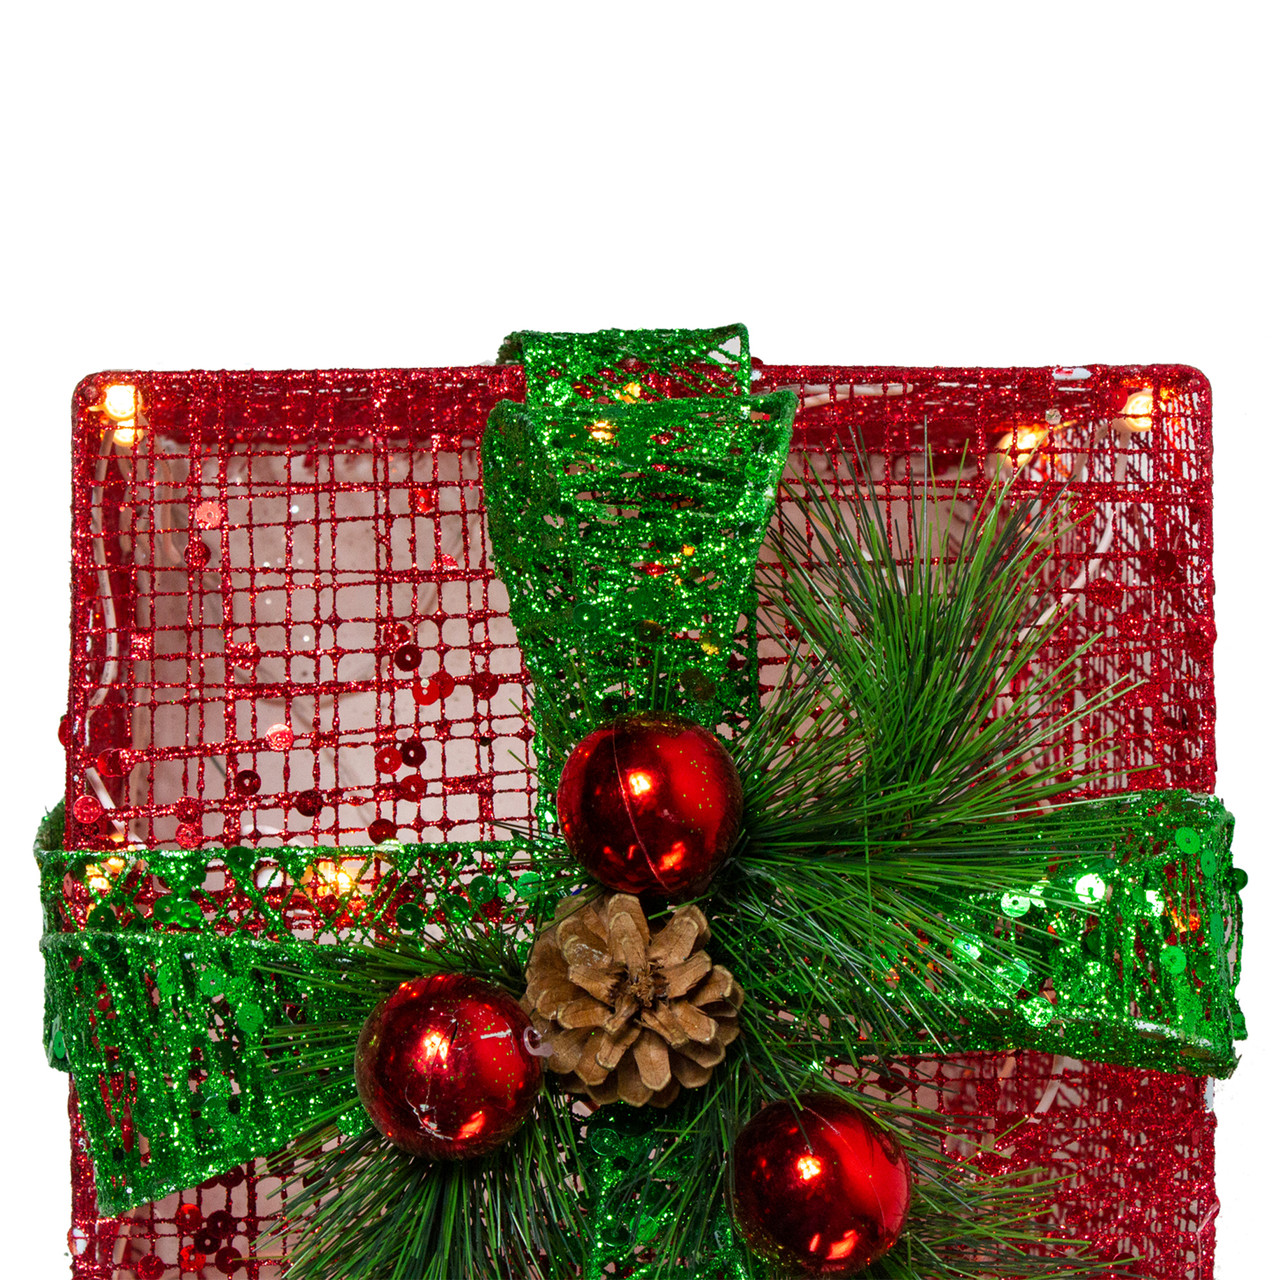 Set of 3 Lighted Red and Green Glitter Gift Box Christmas Outdoor Decorations 12""